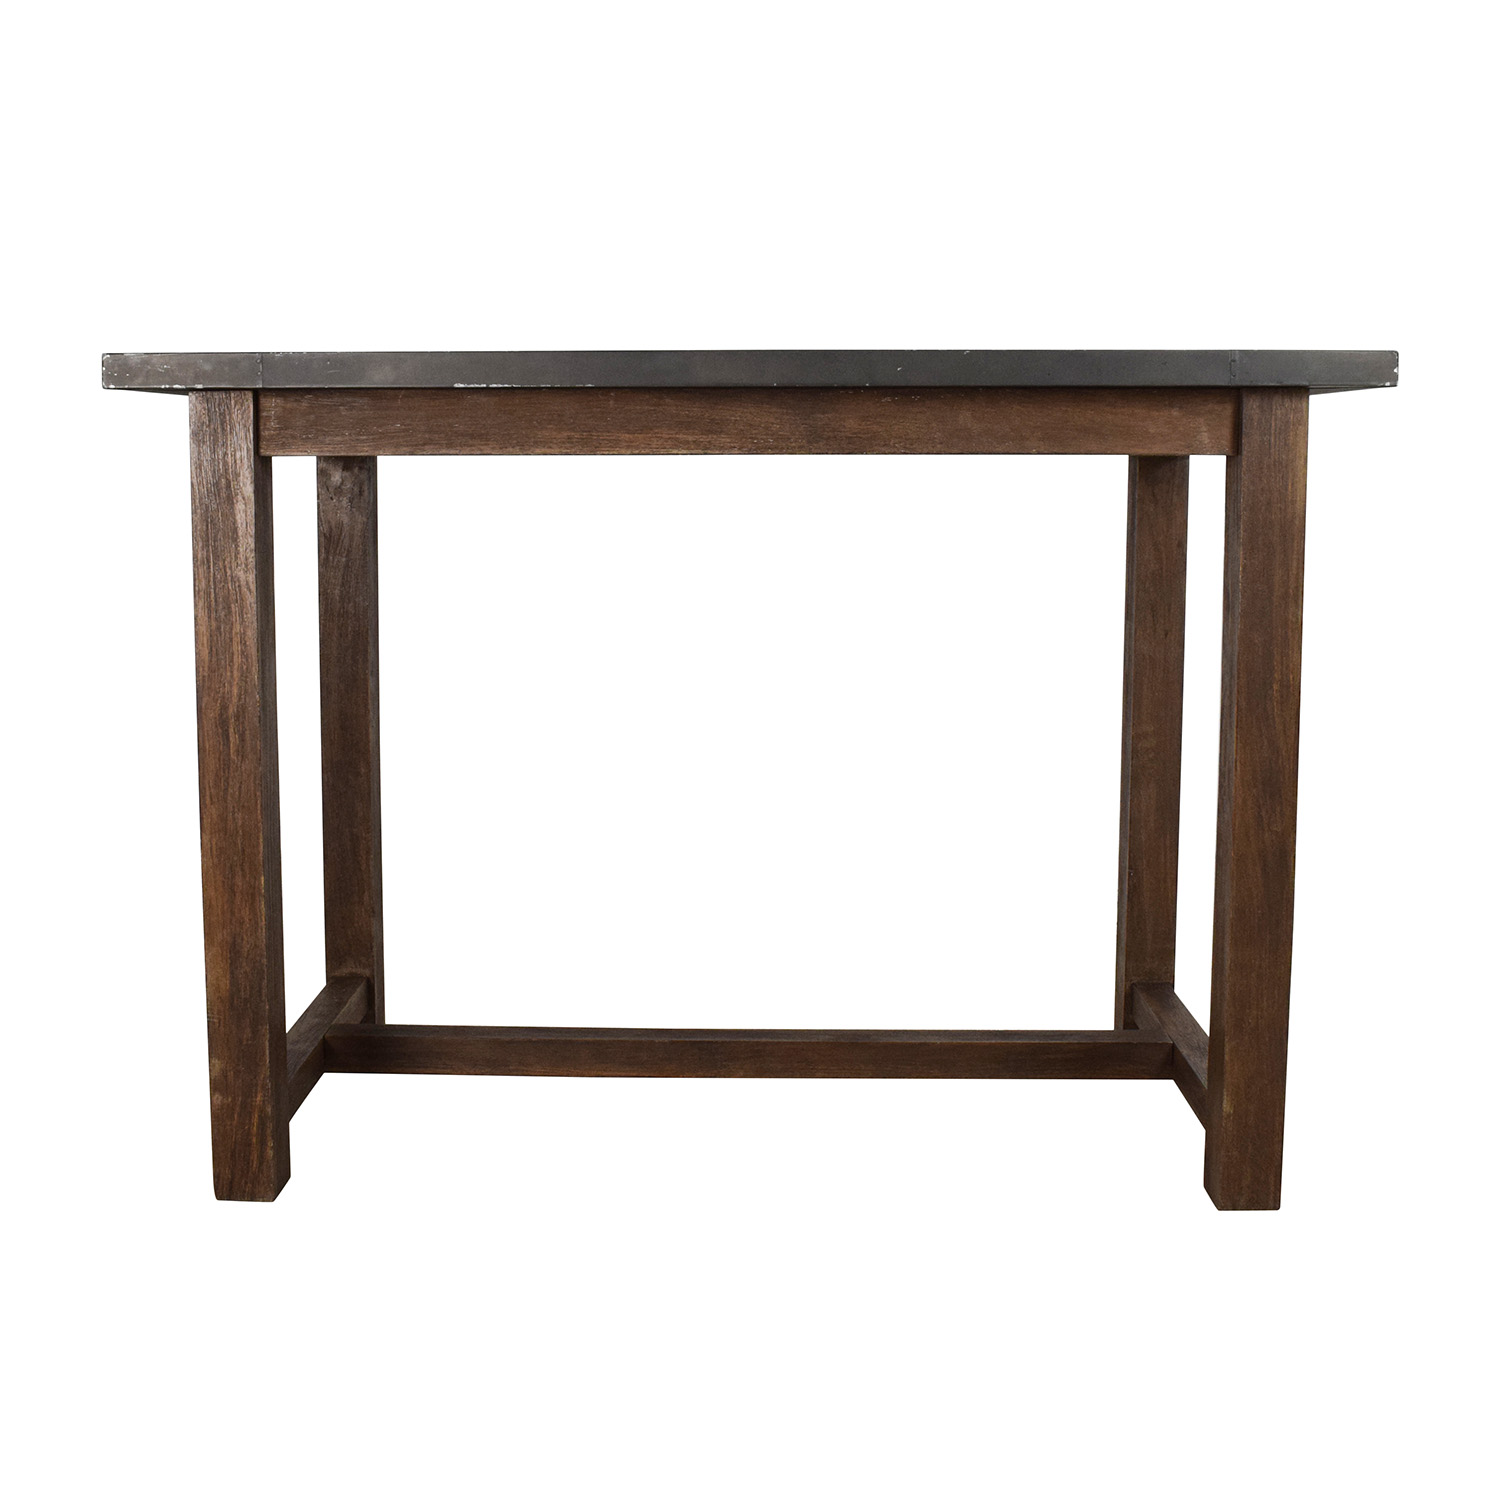 Buy Crate And Barrel Crate U0026 Barrel Galvin High Table Online